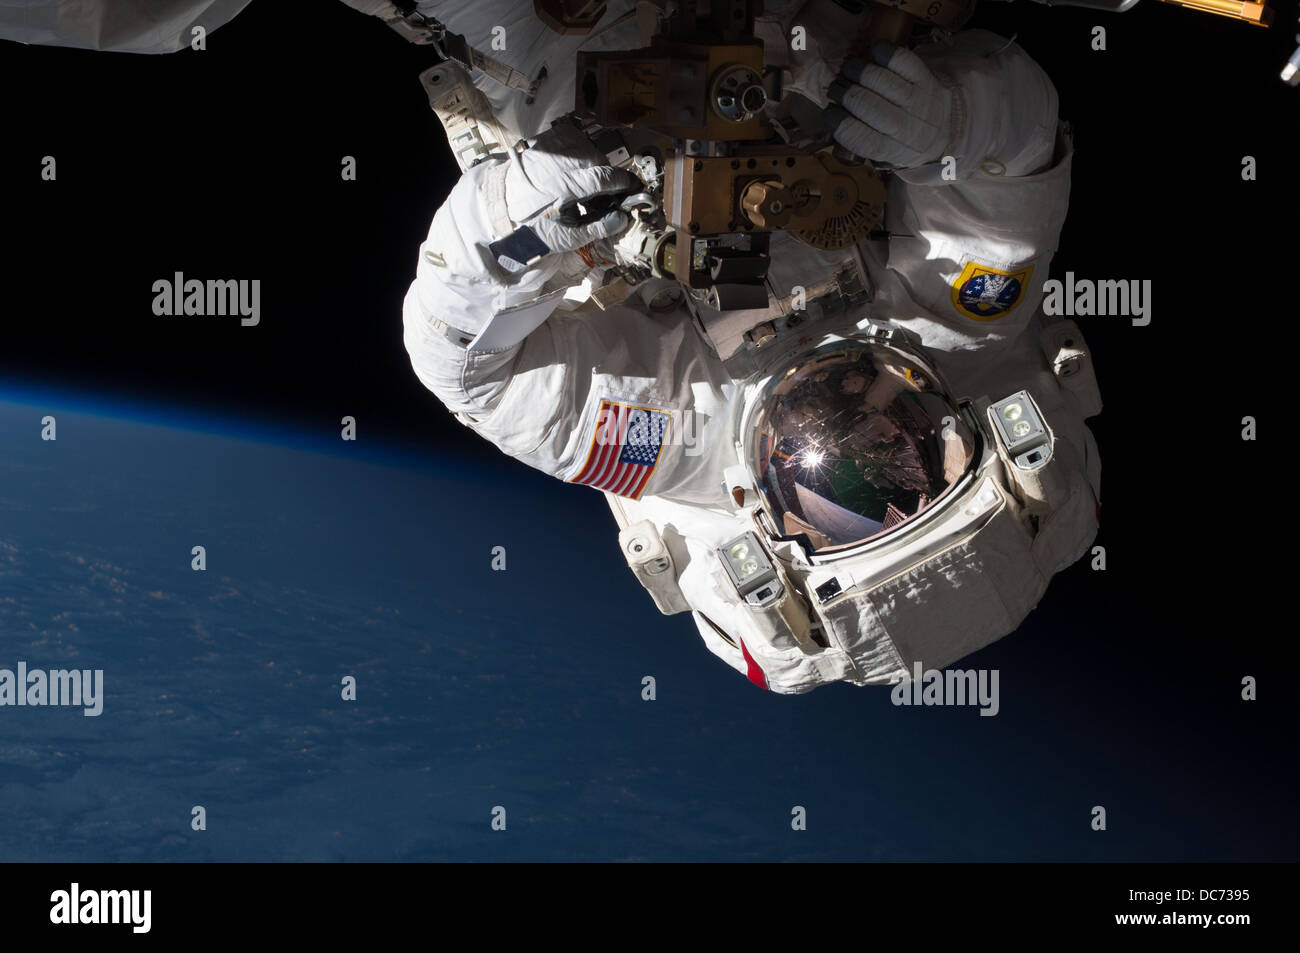 NASA Expedition 35 Flight Engineer Chris Cassidy performing a space walk - Stock Image